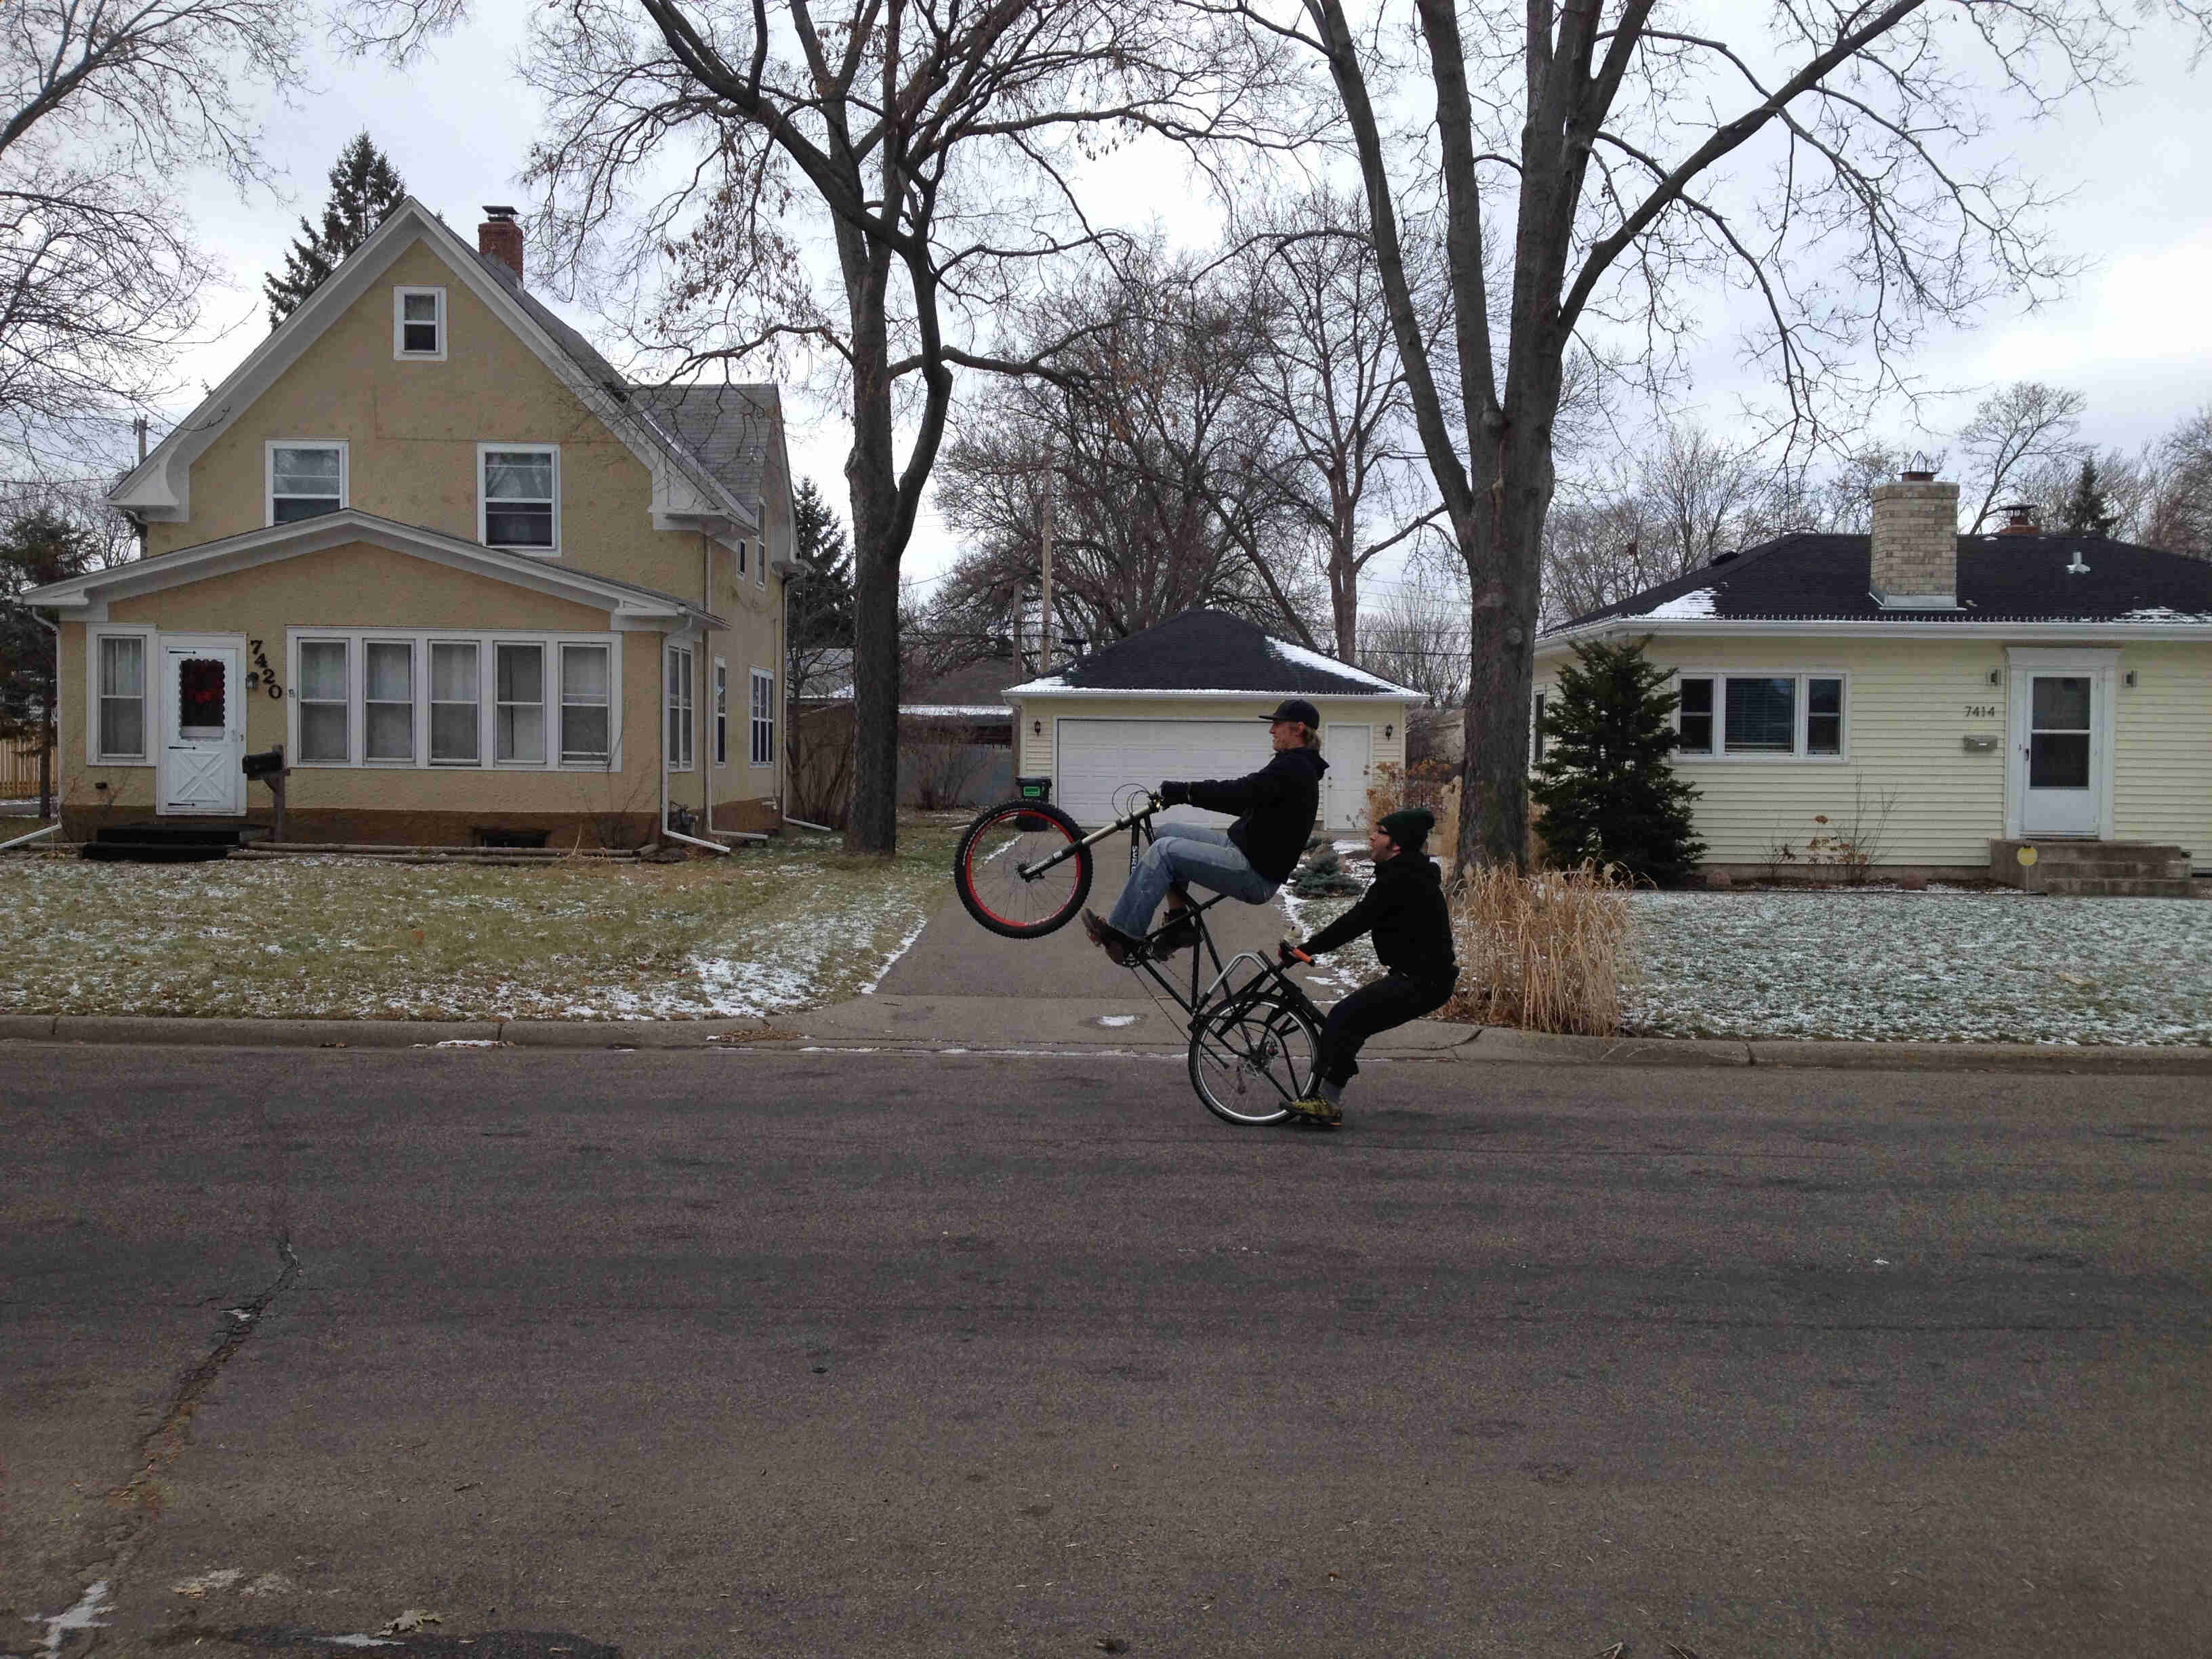 Left side view of a cyclist riding a wheelie on a black Surly Big Dummy bike with a person on back, on a paved street